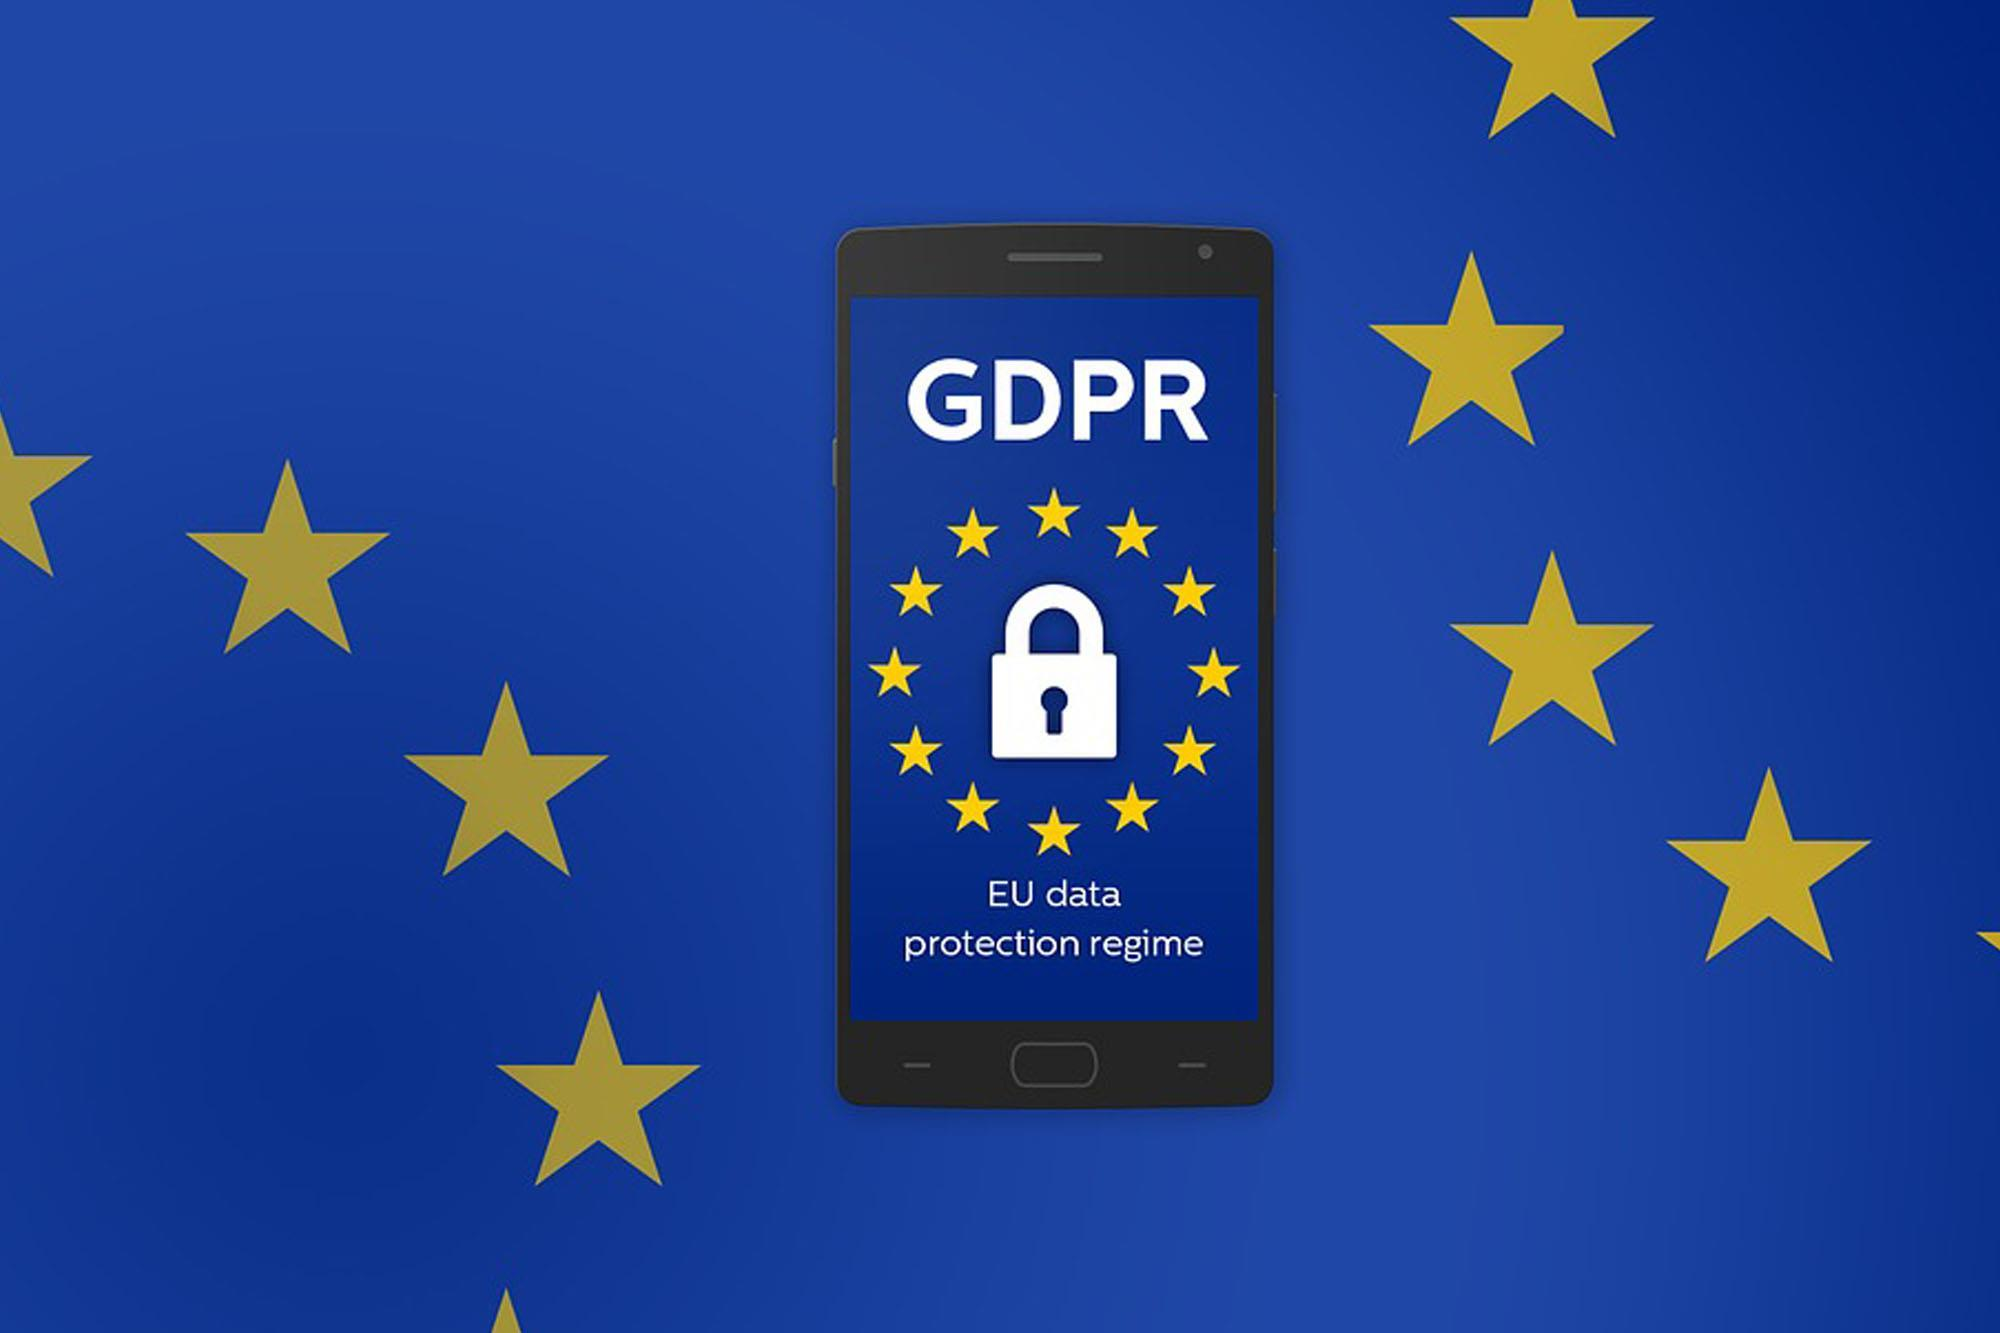 Two years in, GDPR defined by mixed signals, unbalanced enforcement